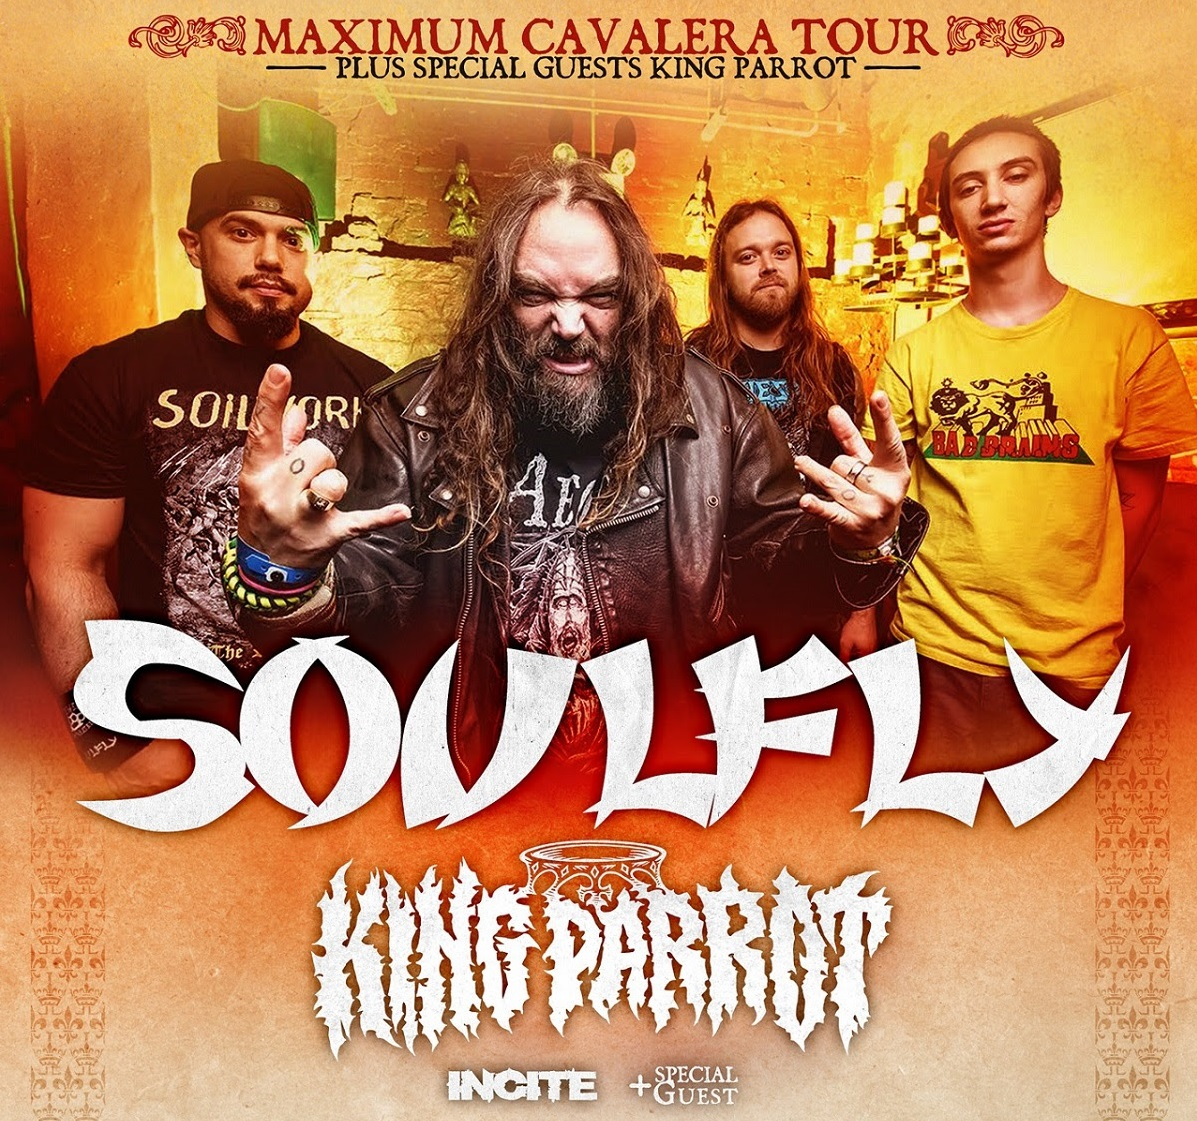 Soulfly king parrot 2016 tour